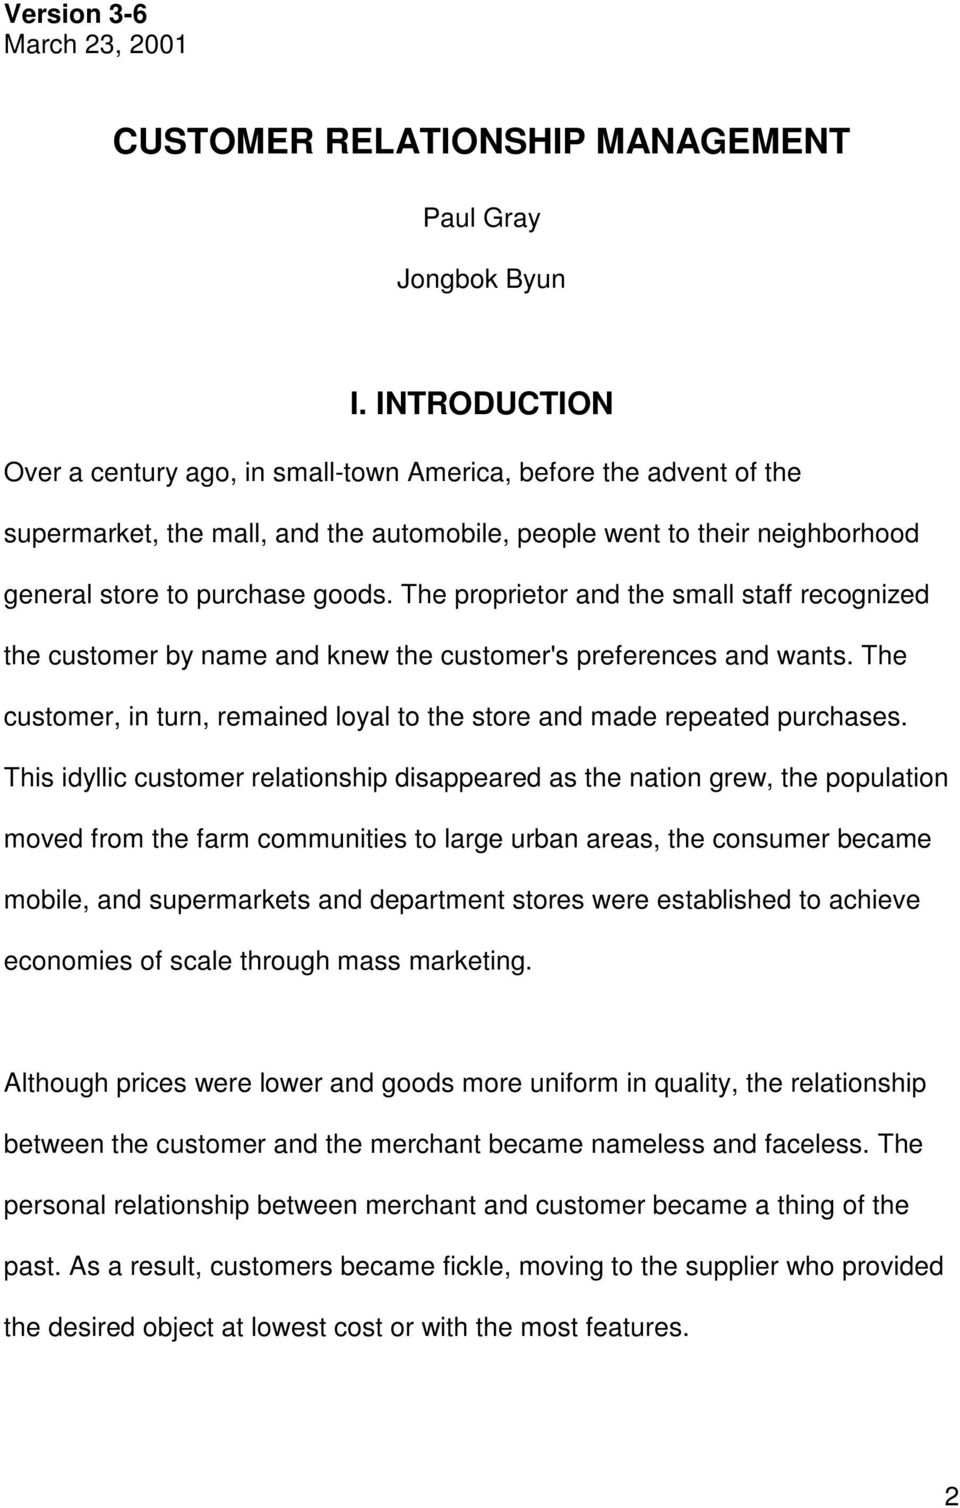 The proprietor and the small staff recognized the customer by name and knew the customer's preferences and wants. The customer, in turn, remained loyal to the store and made repeated purchases.